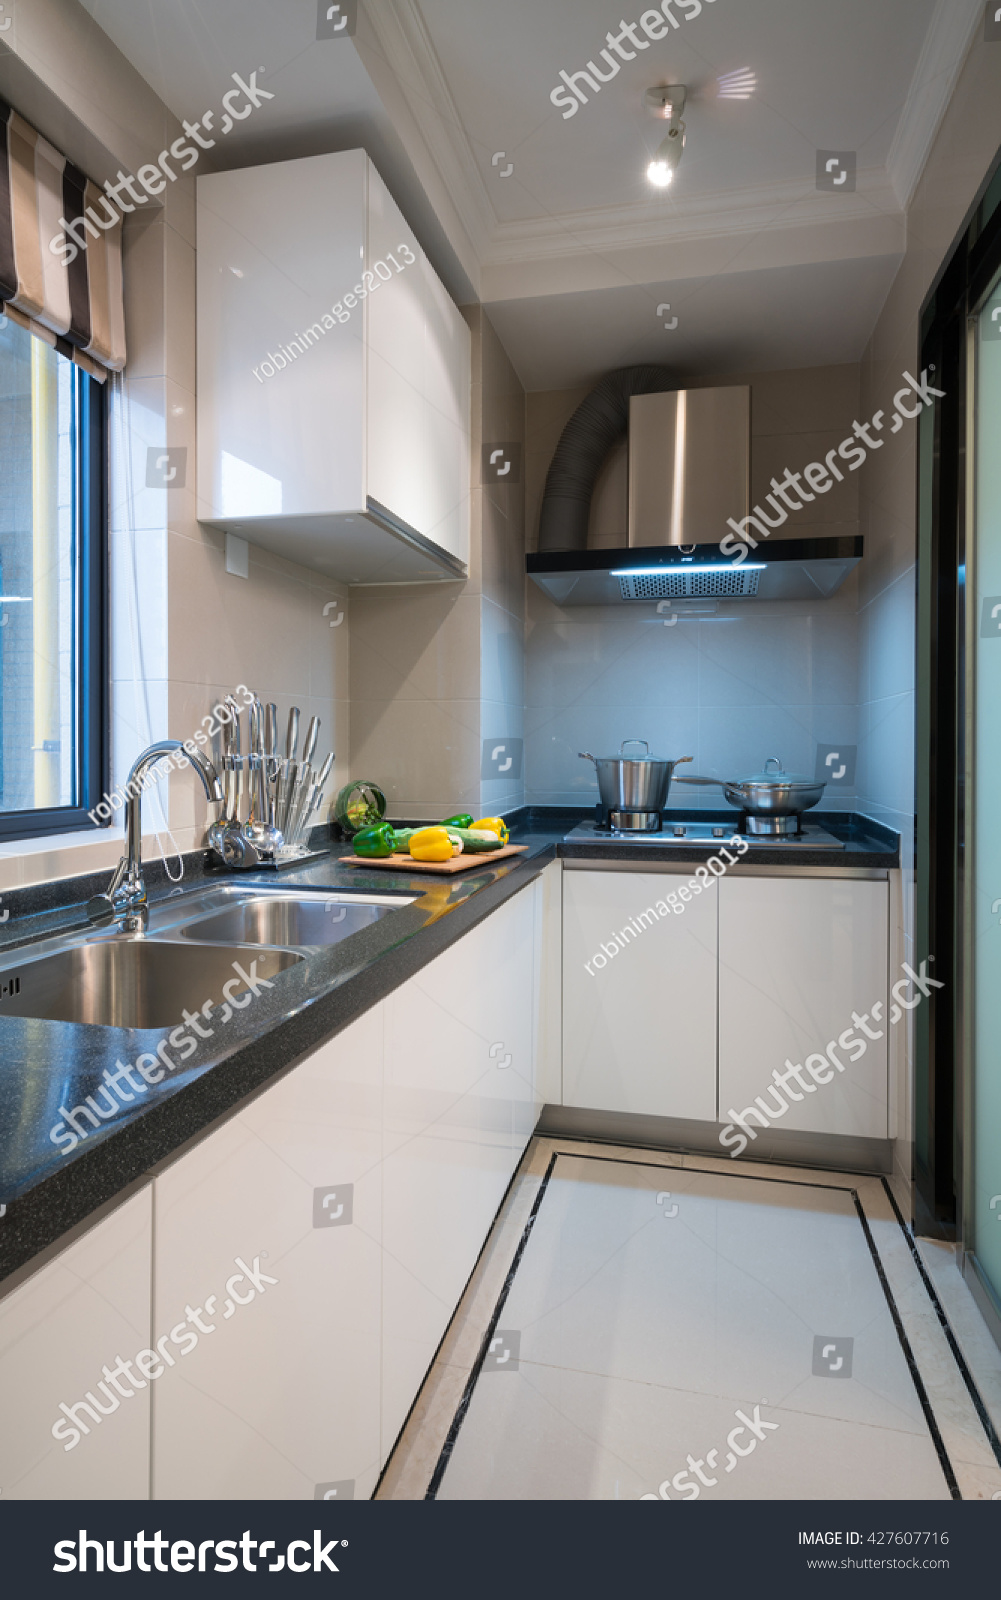 Cabinet D Architecte Nice modern kitchen nice cabinet stock photo (edit now) 427607716